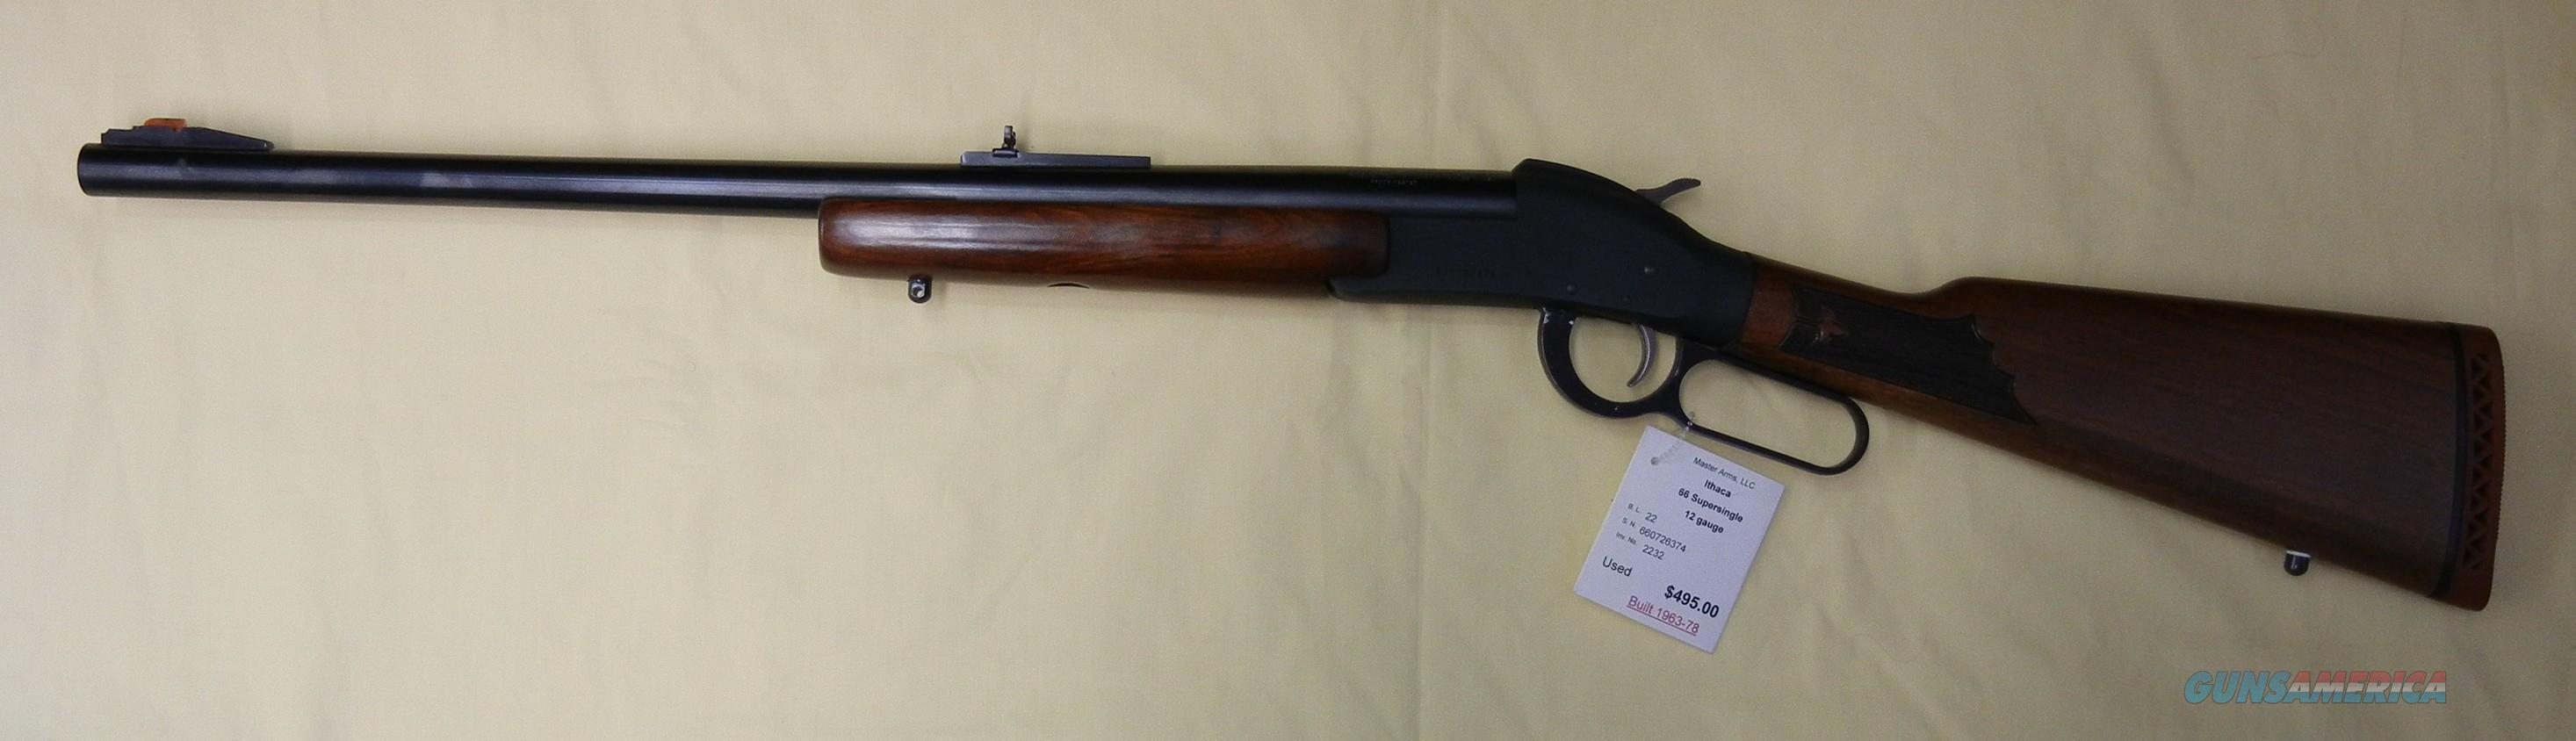 ITHACA 66 SUPERSINGLE  Guns > Shotguns > Ithaca Shotguns > Single Bbl > Sporting/Hunting